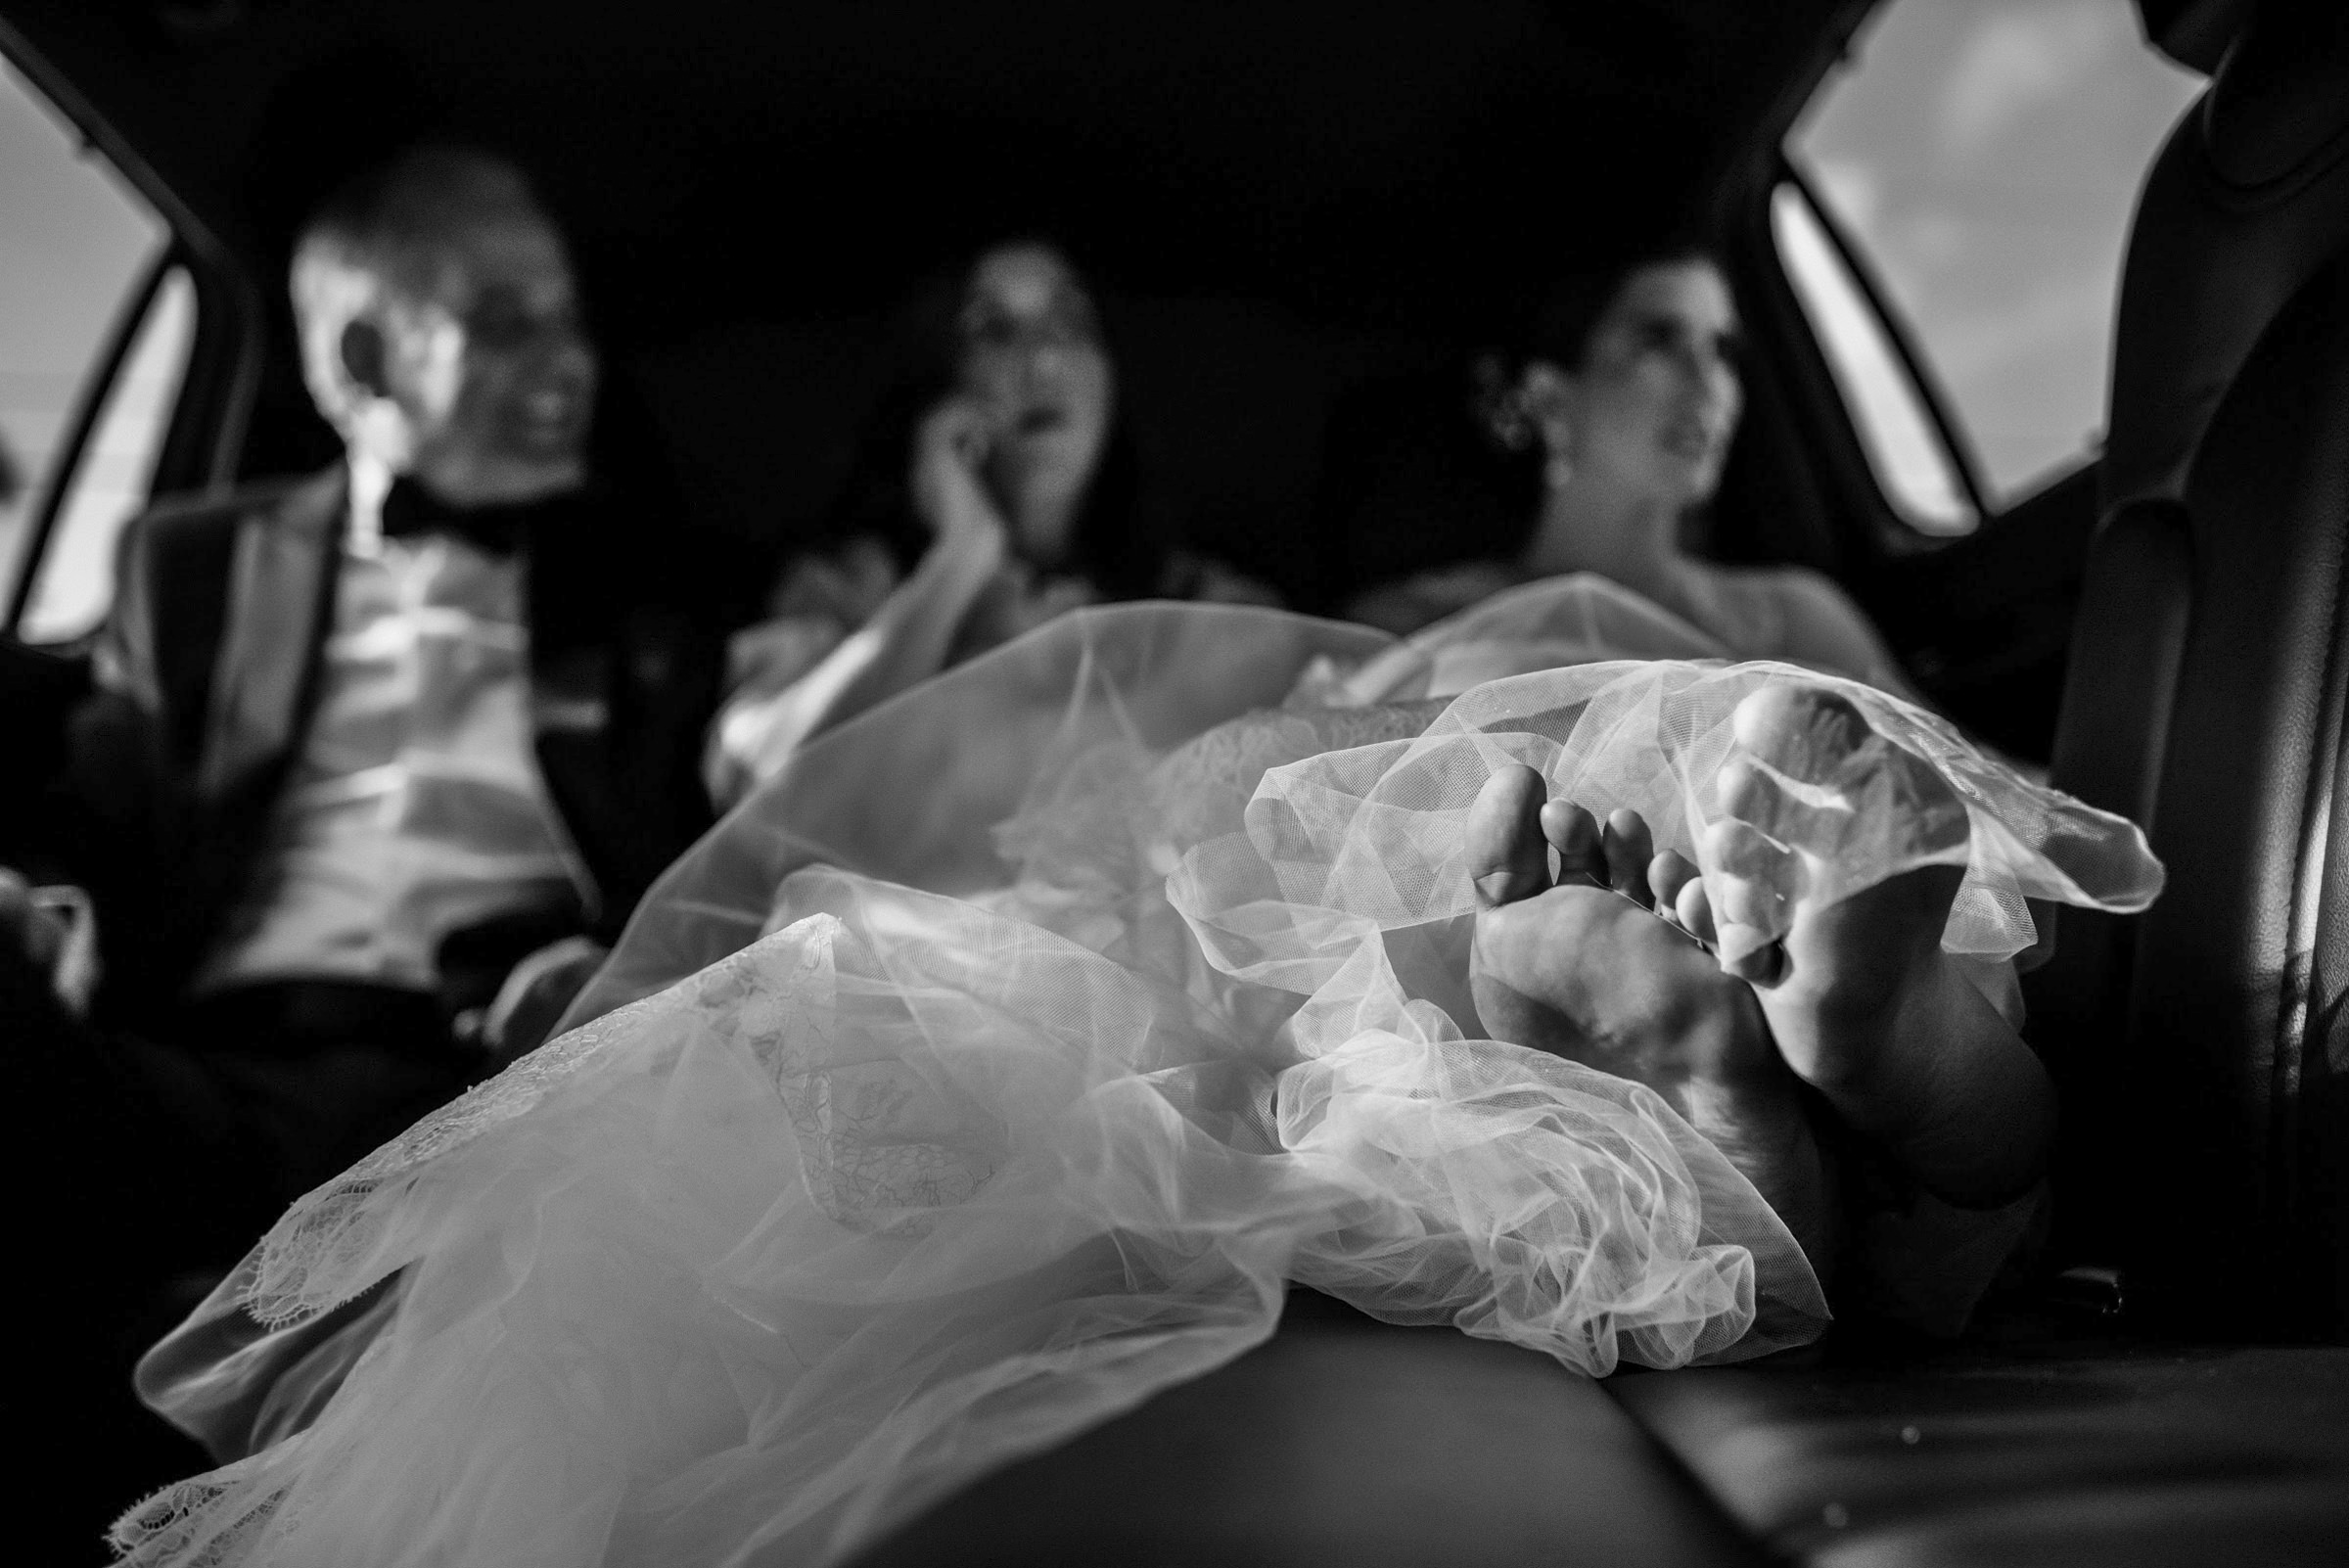 Feet of the bride relaxing in the limo - photo by El Marco Rojo